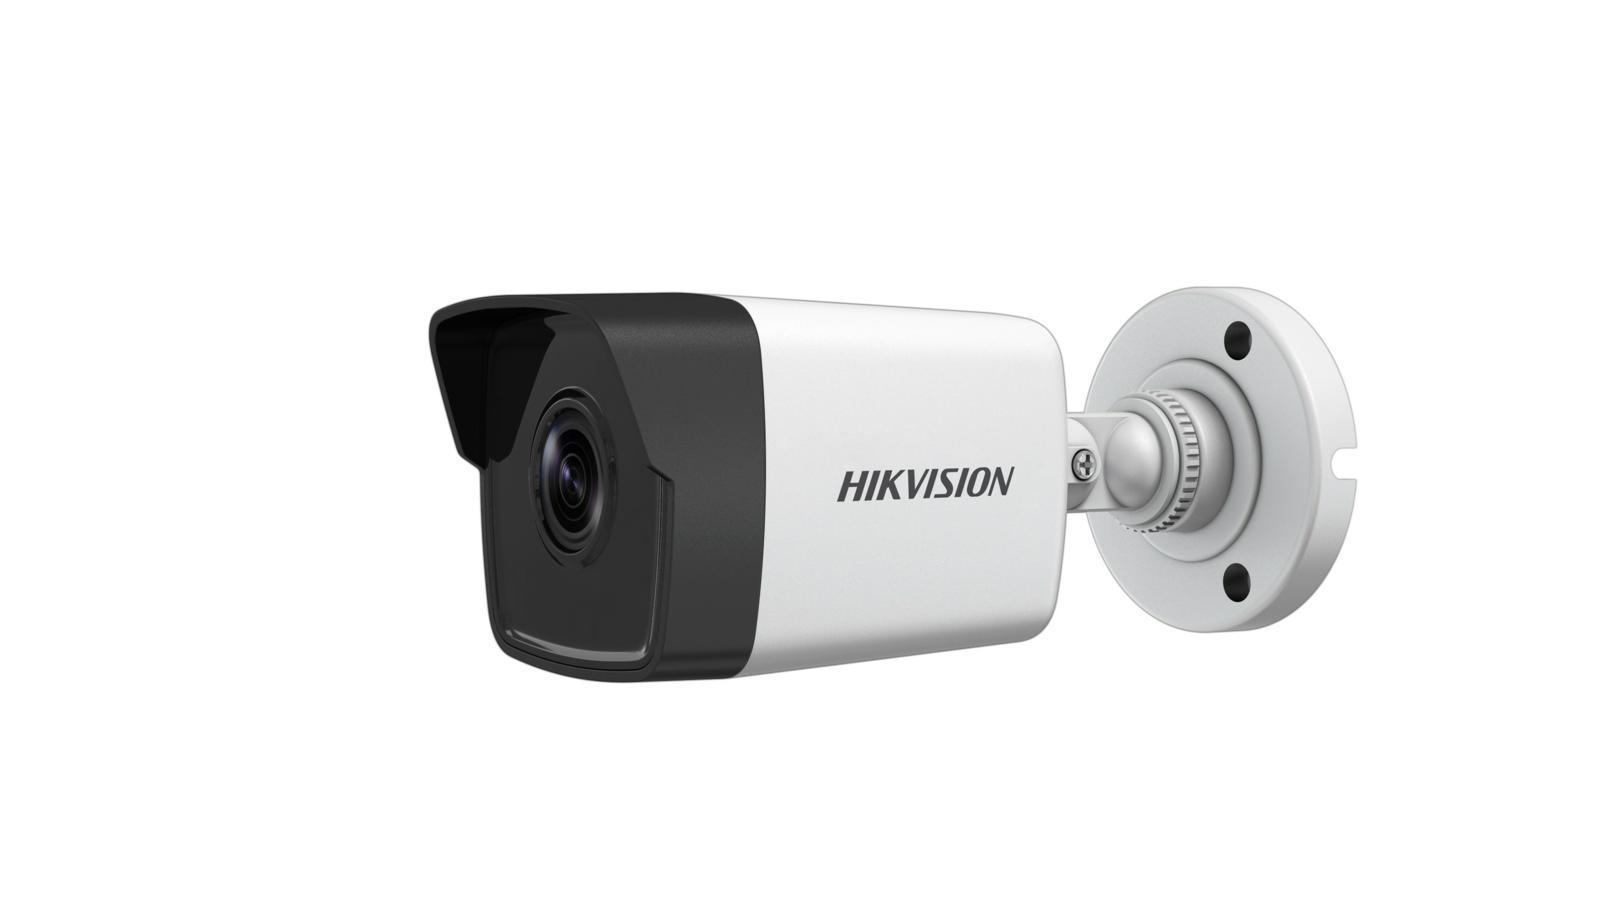 SICE Distributore Ufficiale  TELECAMERE IP TELECAMERE EASY 4Mpx 2.8mm H.265+/H.264+ IR 30m ICR | DS-2CD1043G0-I 2